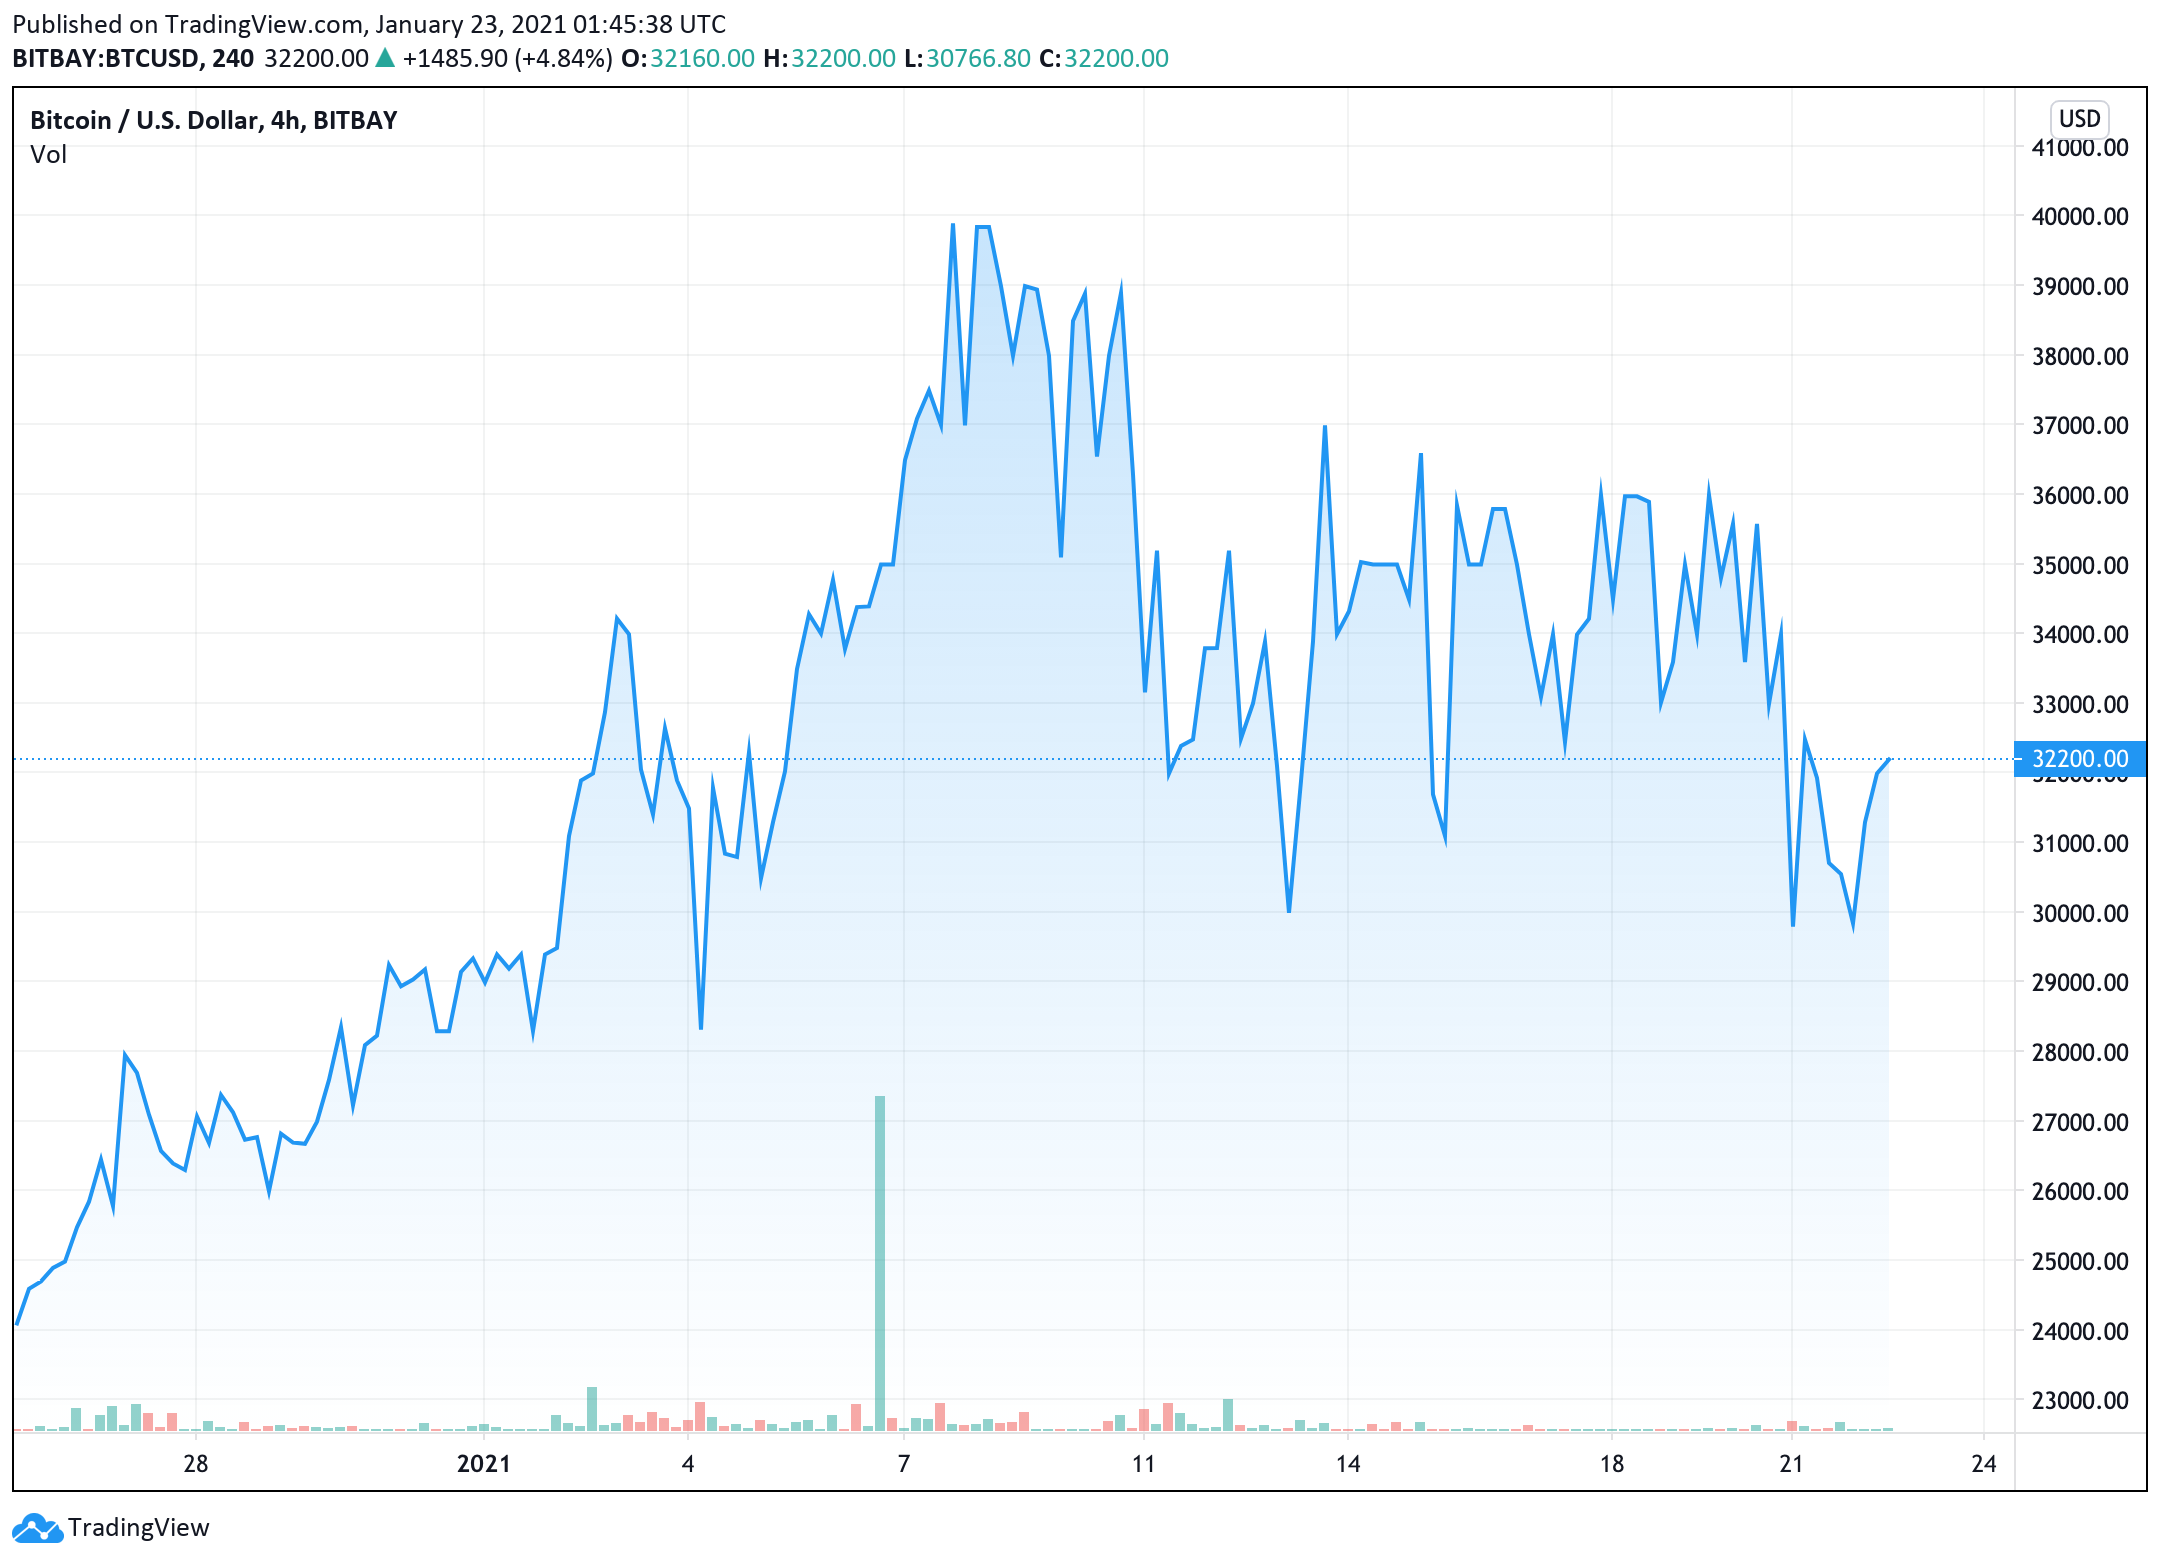 bitcoin-price-was-in-an-uptrend-a-stark-reversal-from-the-past-few-days